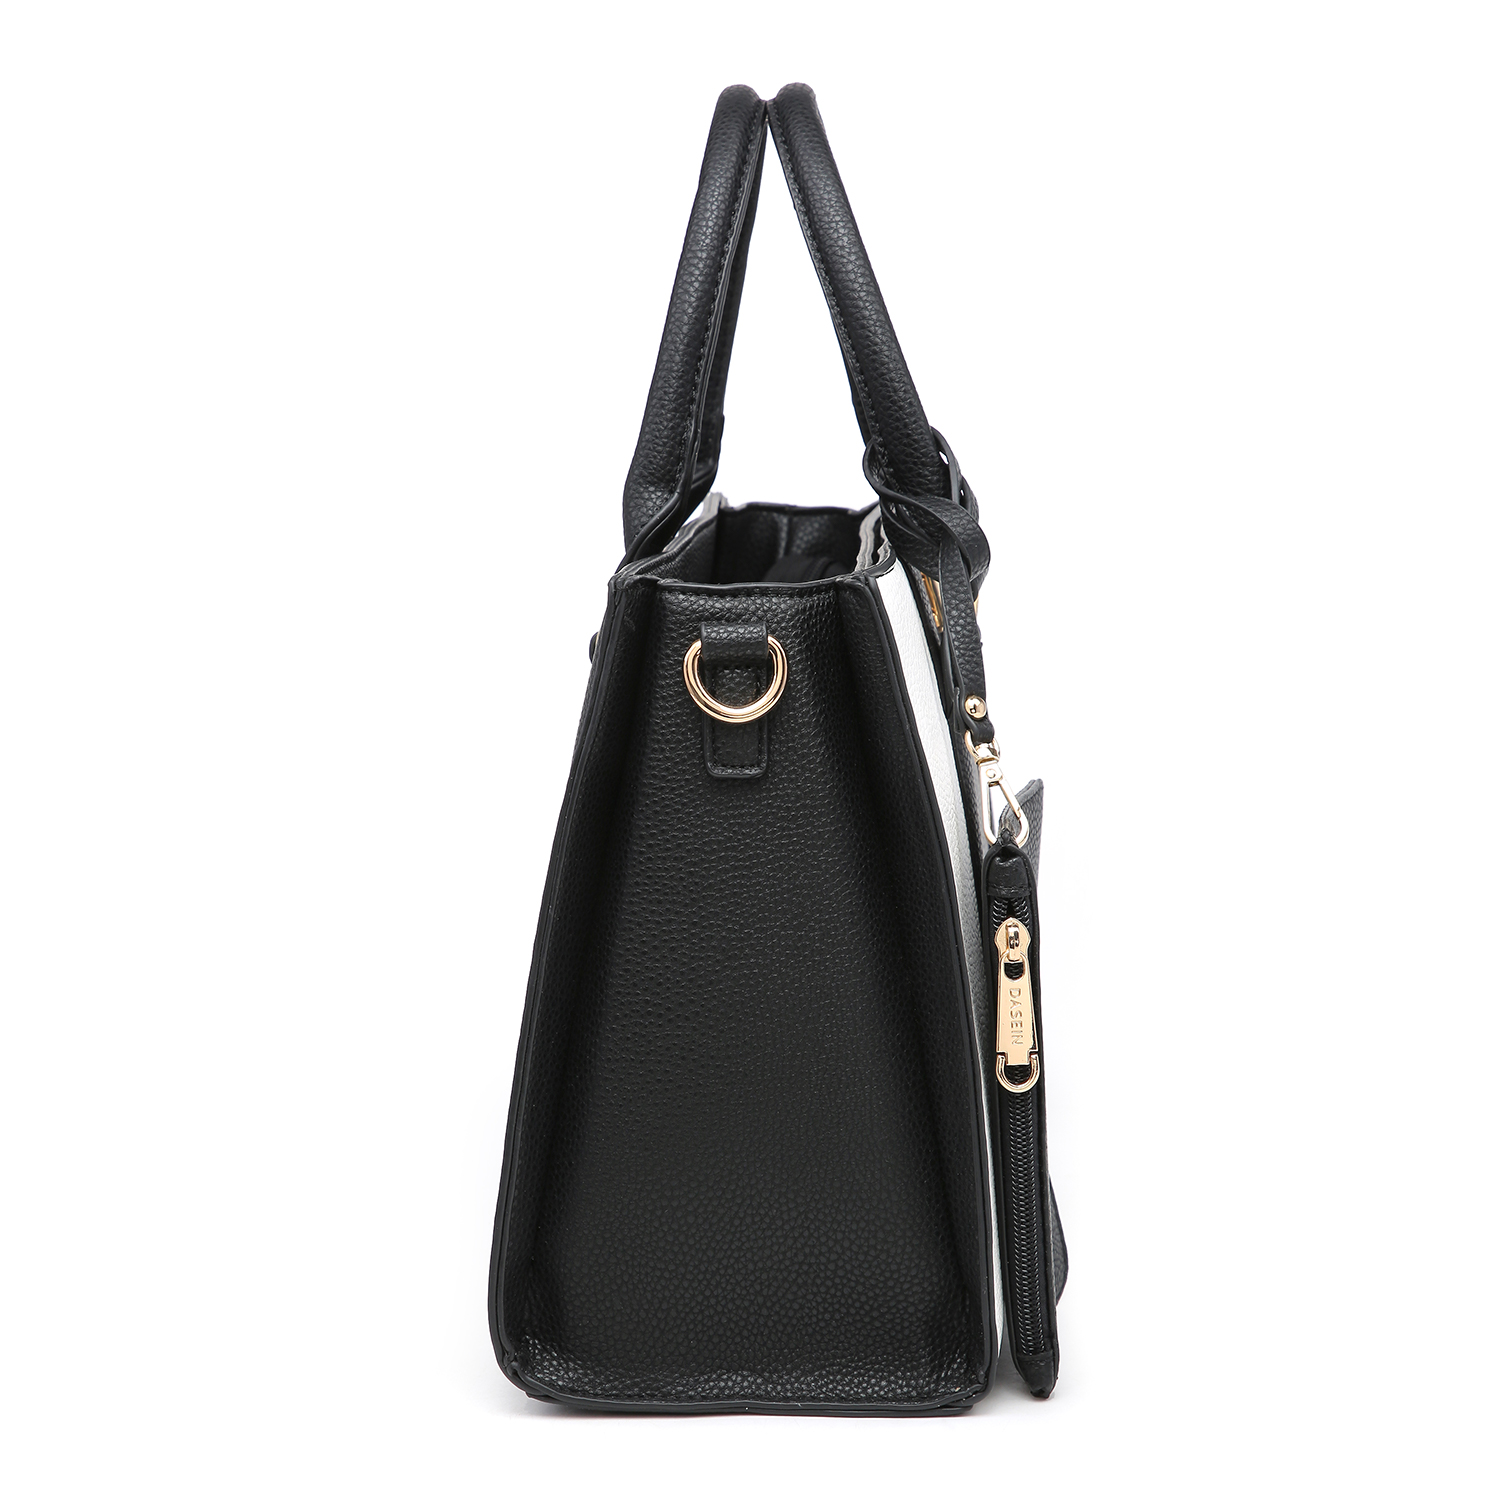 3-in-1 Dasein two tone Medium Satchel with Matching wallet and Wristlet